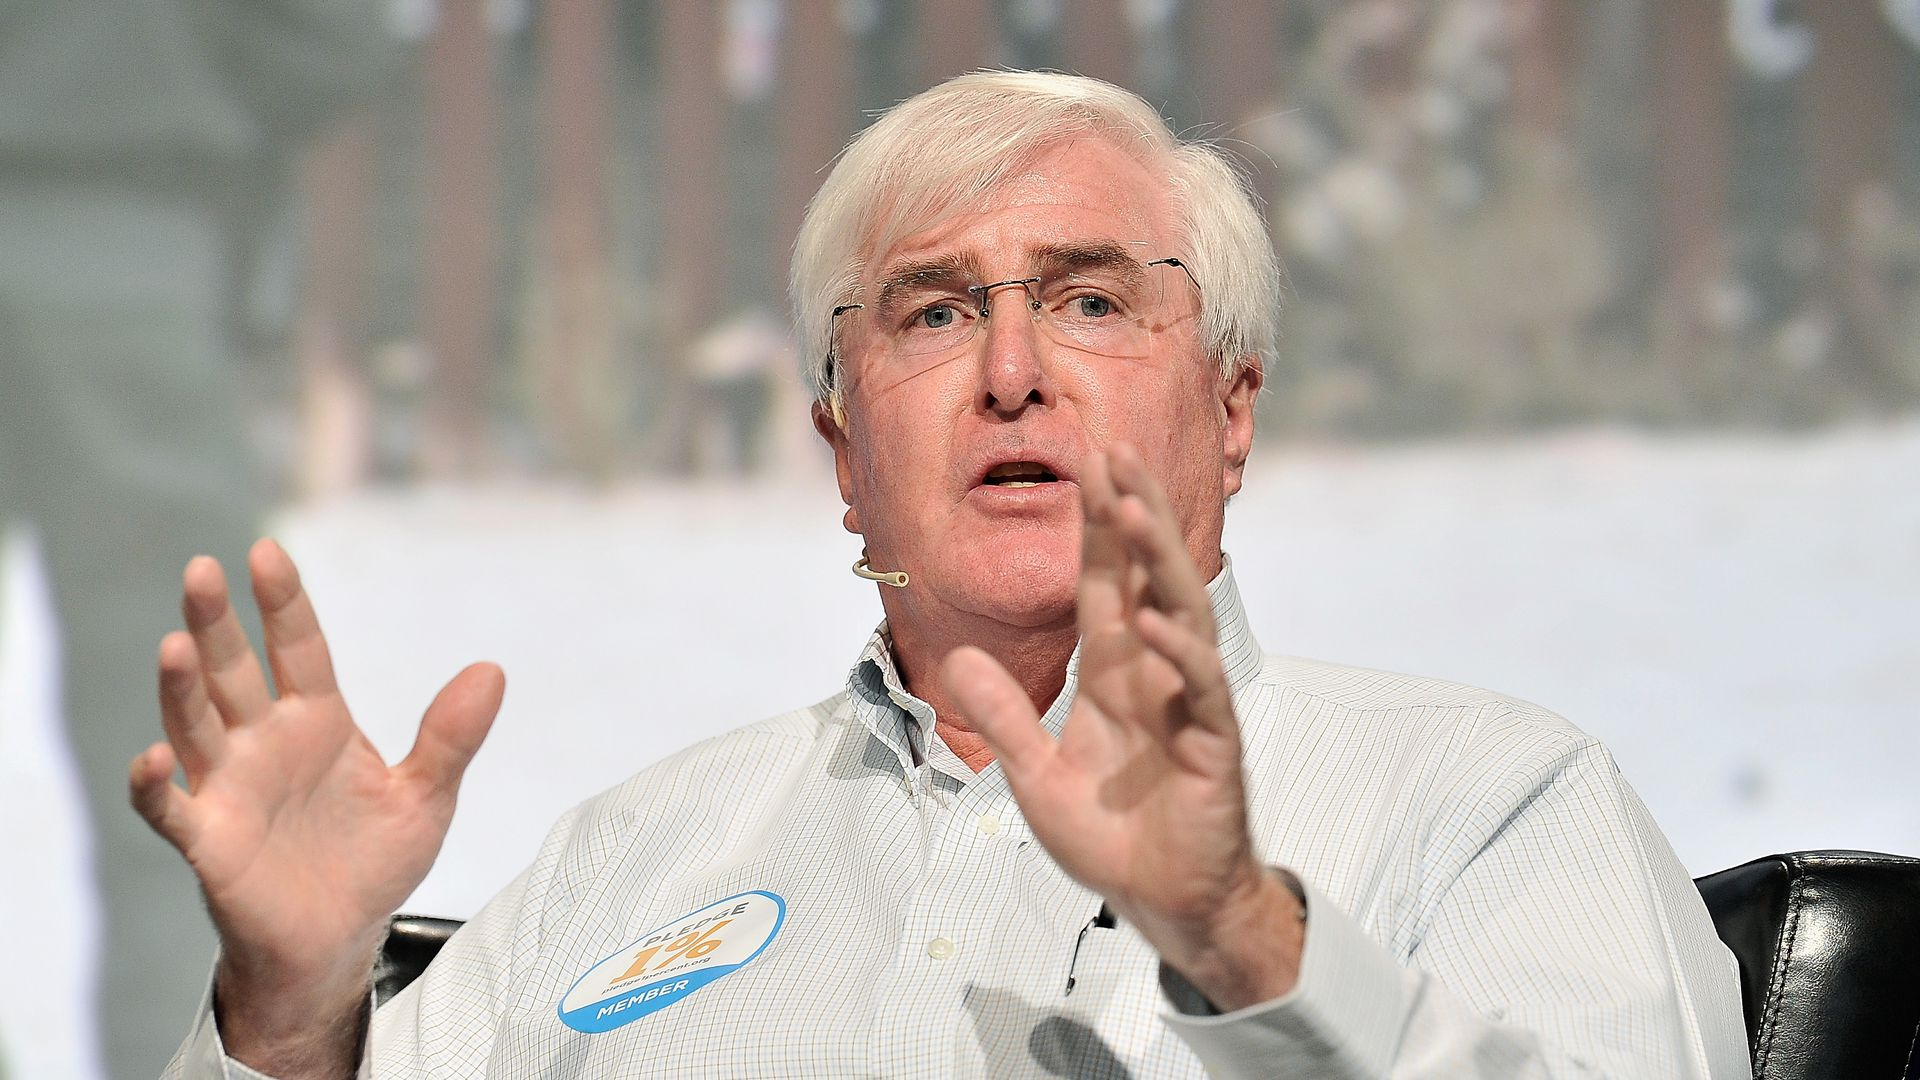 Ron Conway's SV Angel won't raise any more funds